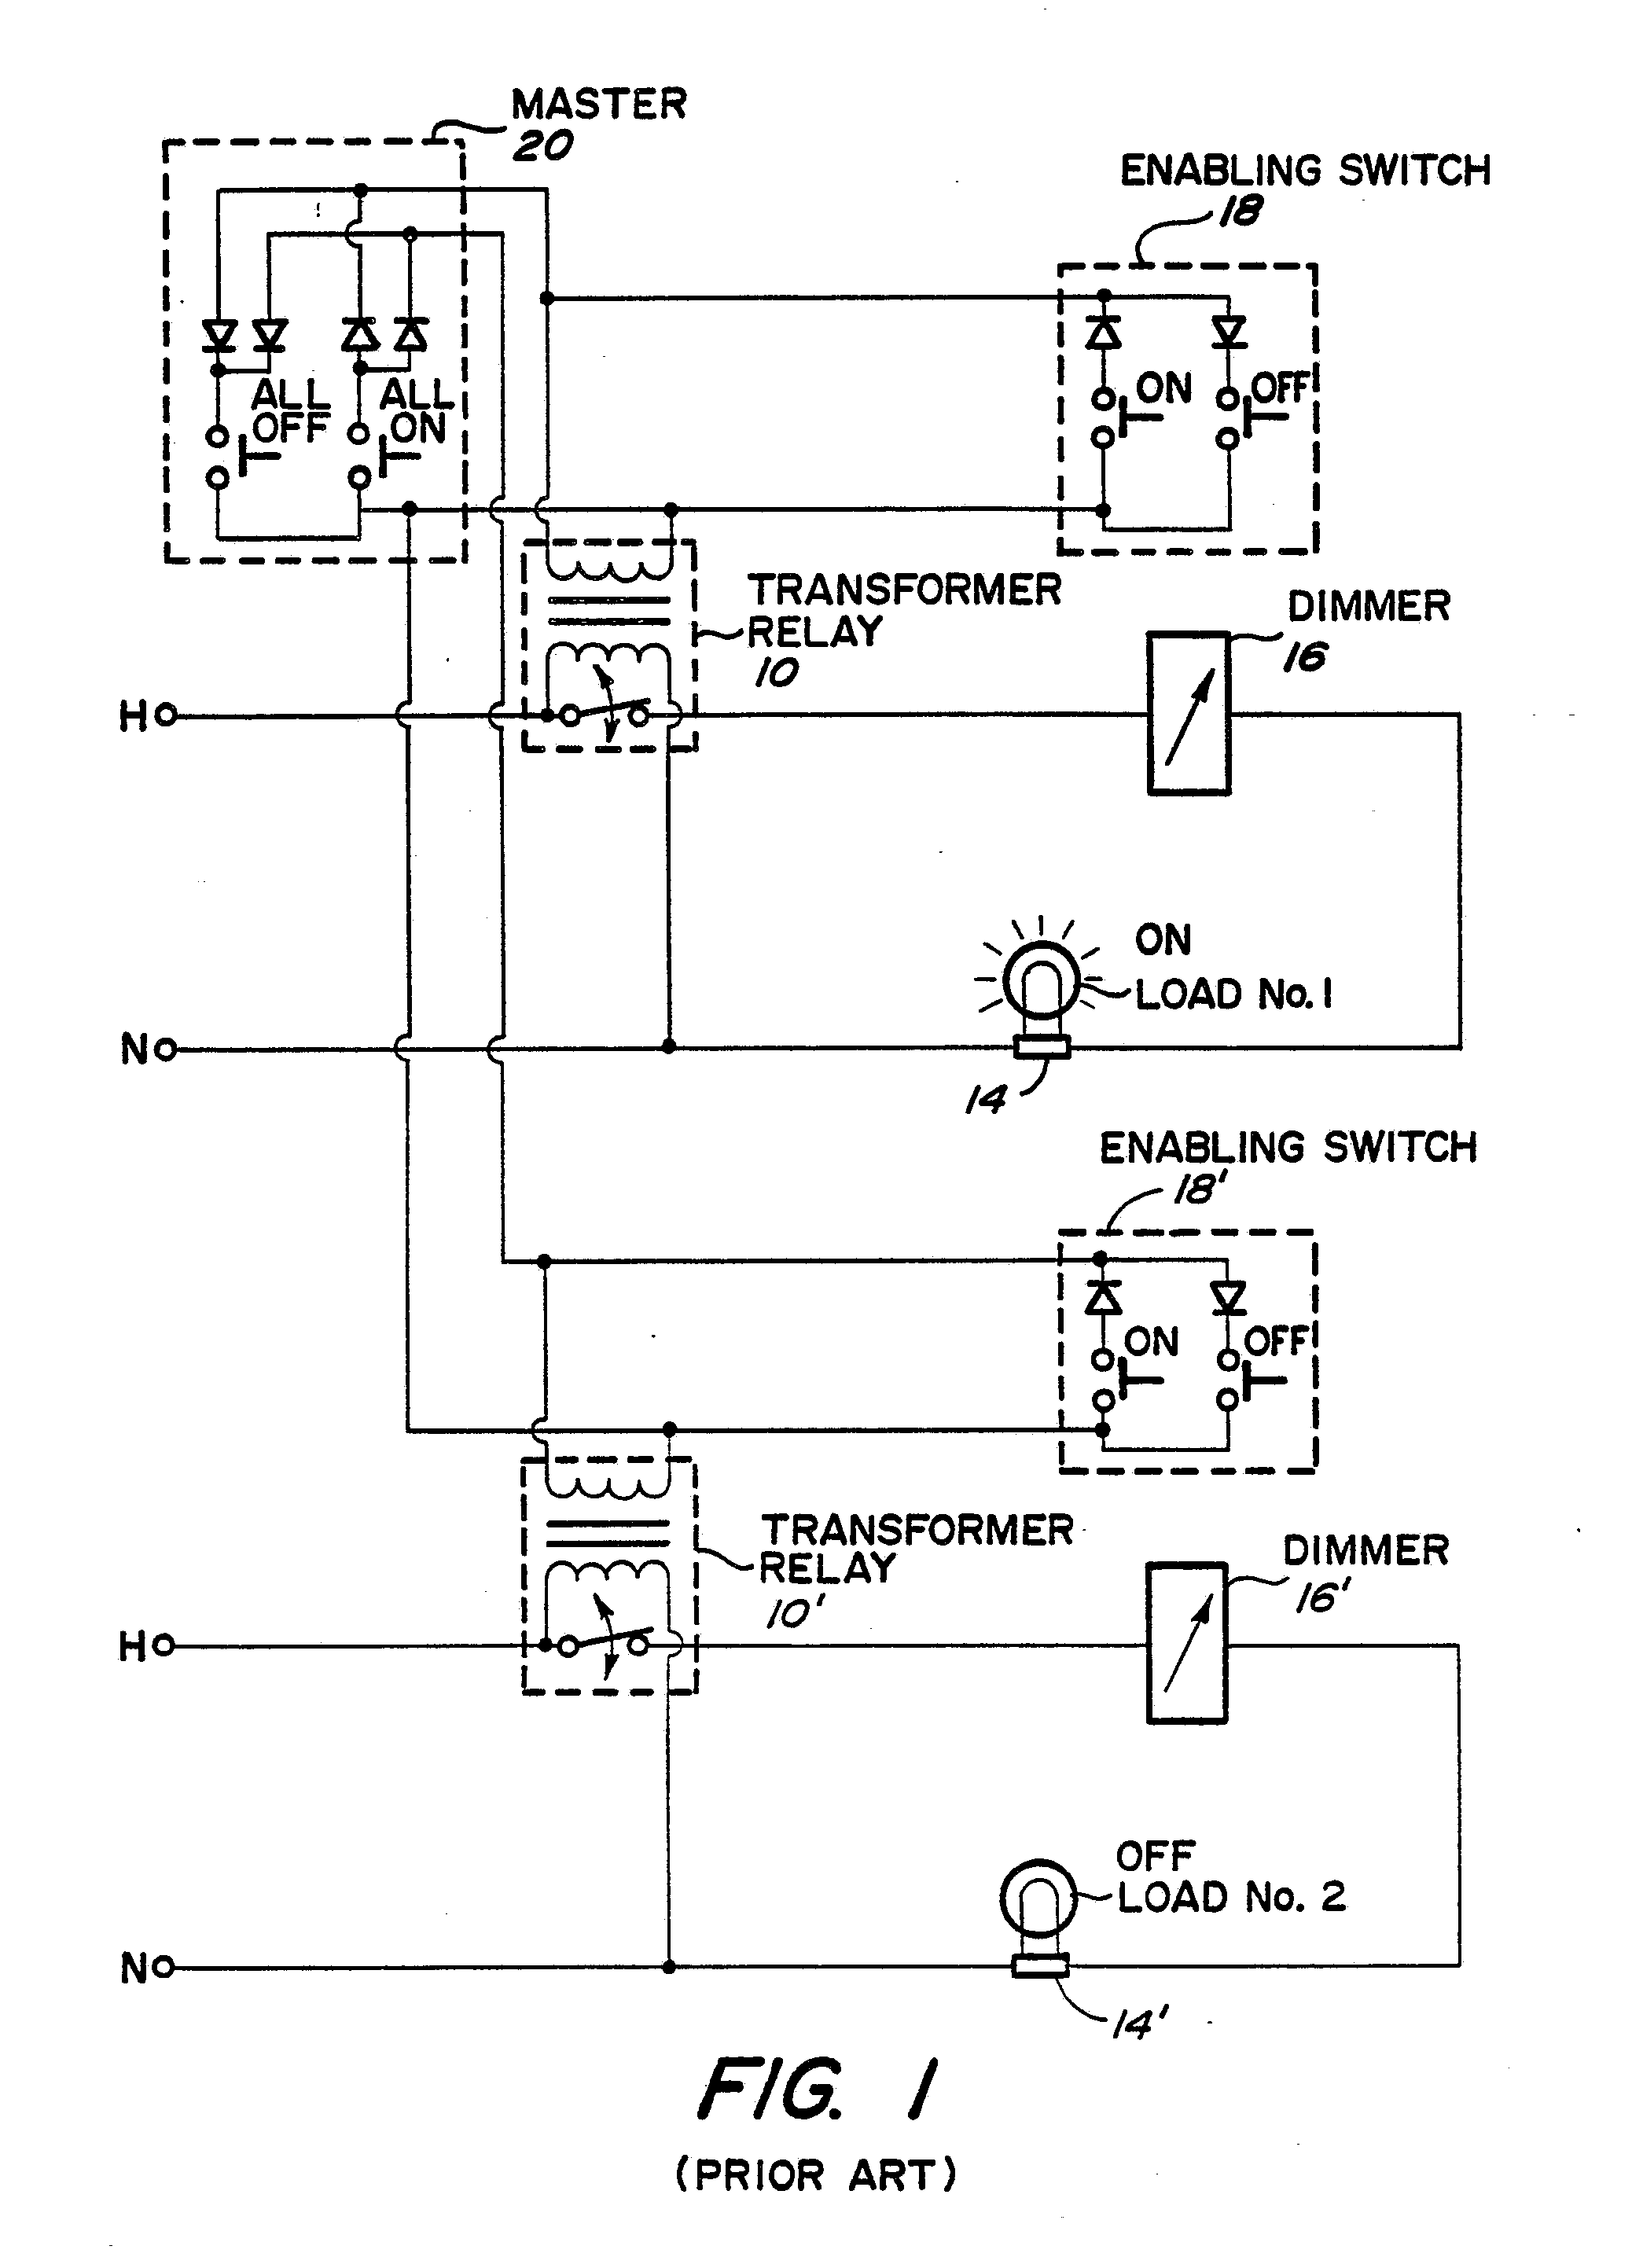 imgf0001 patent ep0361734a1 master electrical load control google patents bticino wiring diagram at gsmportal.co